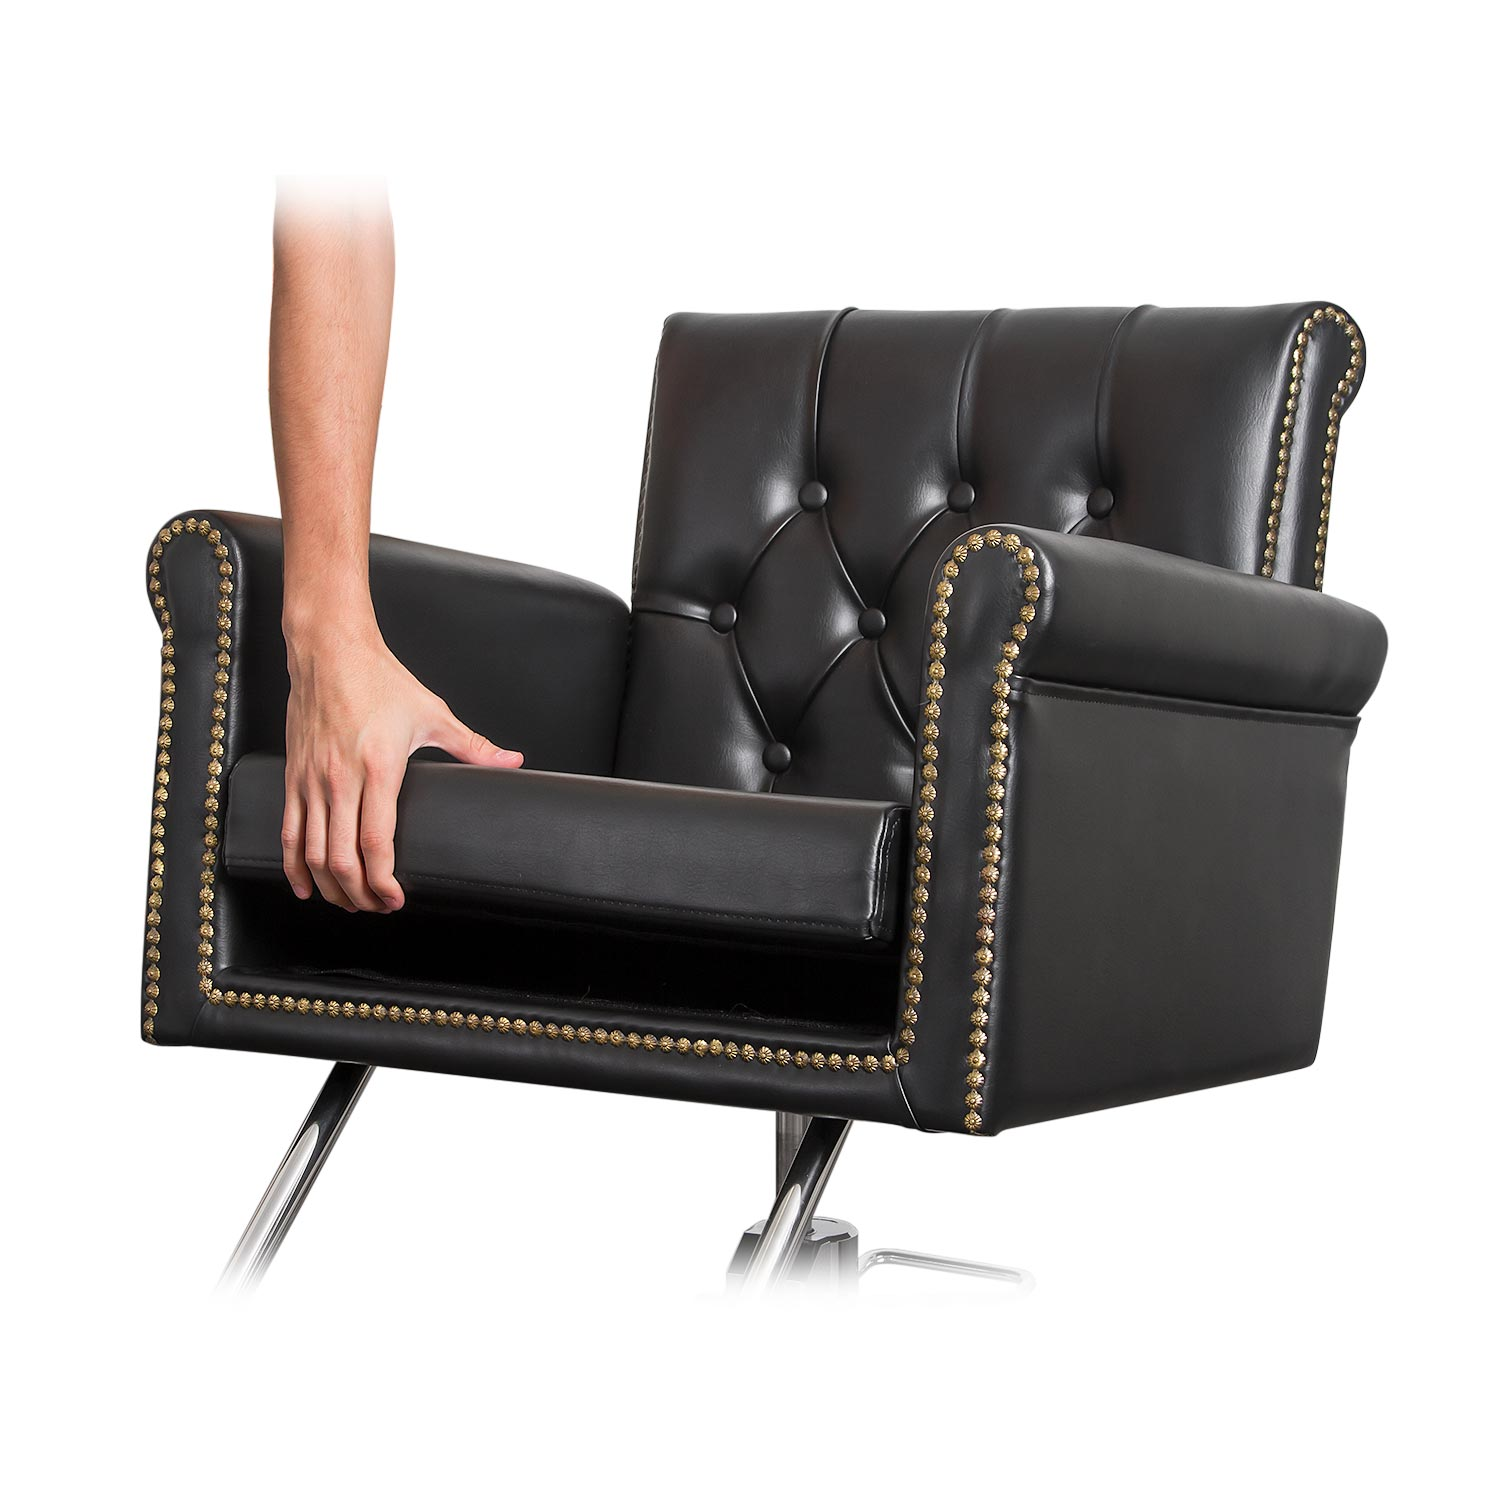 Winston Hair Chair with Nailhead Trim and Tufting alternative product image 5